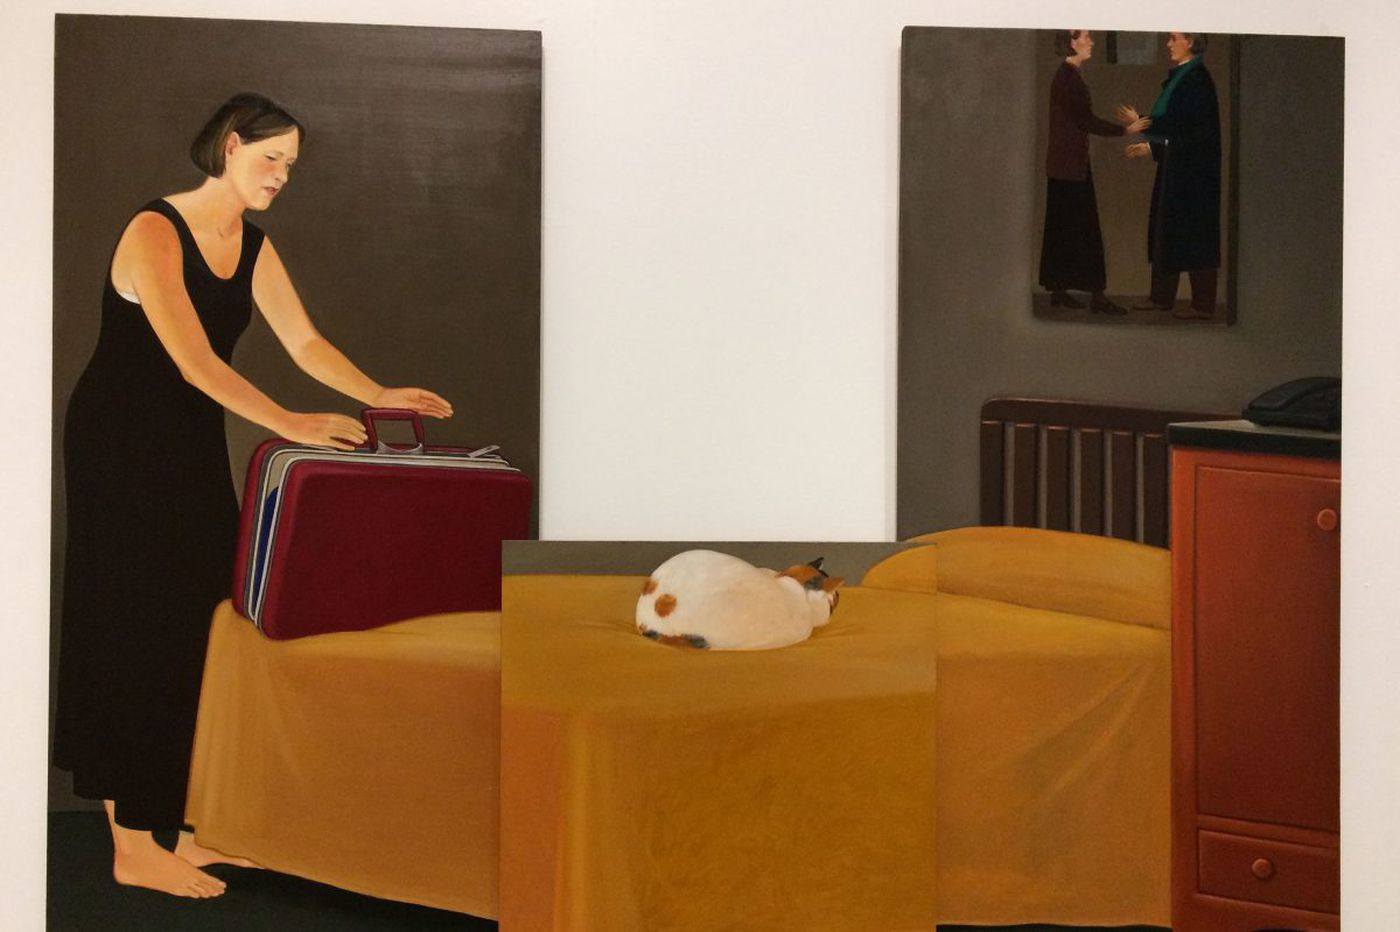 In Philly galleries now: 3 local faves at Drexel, Dieu Donné hand-made paper, realist paintings